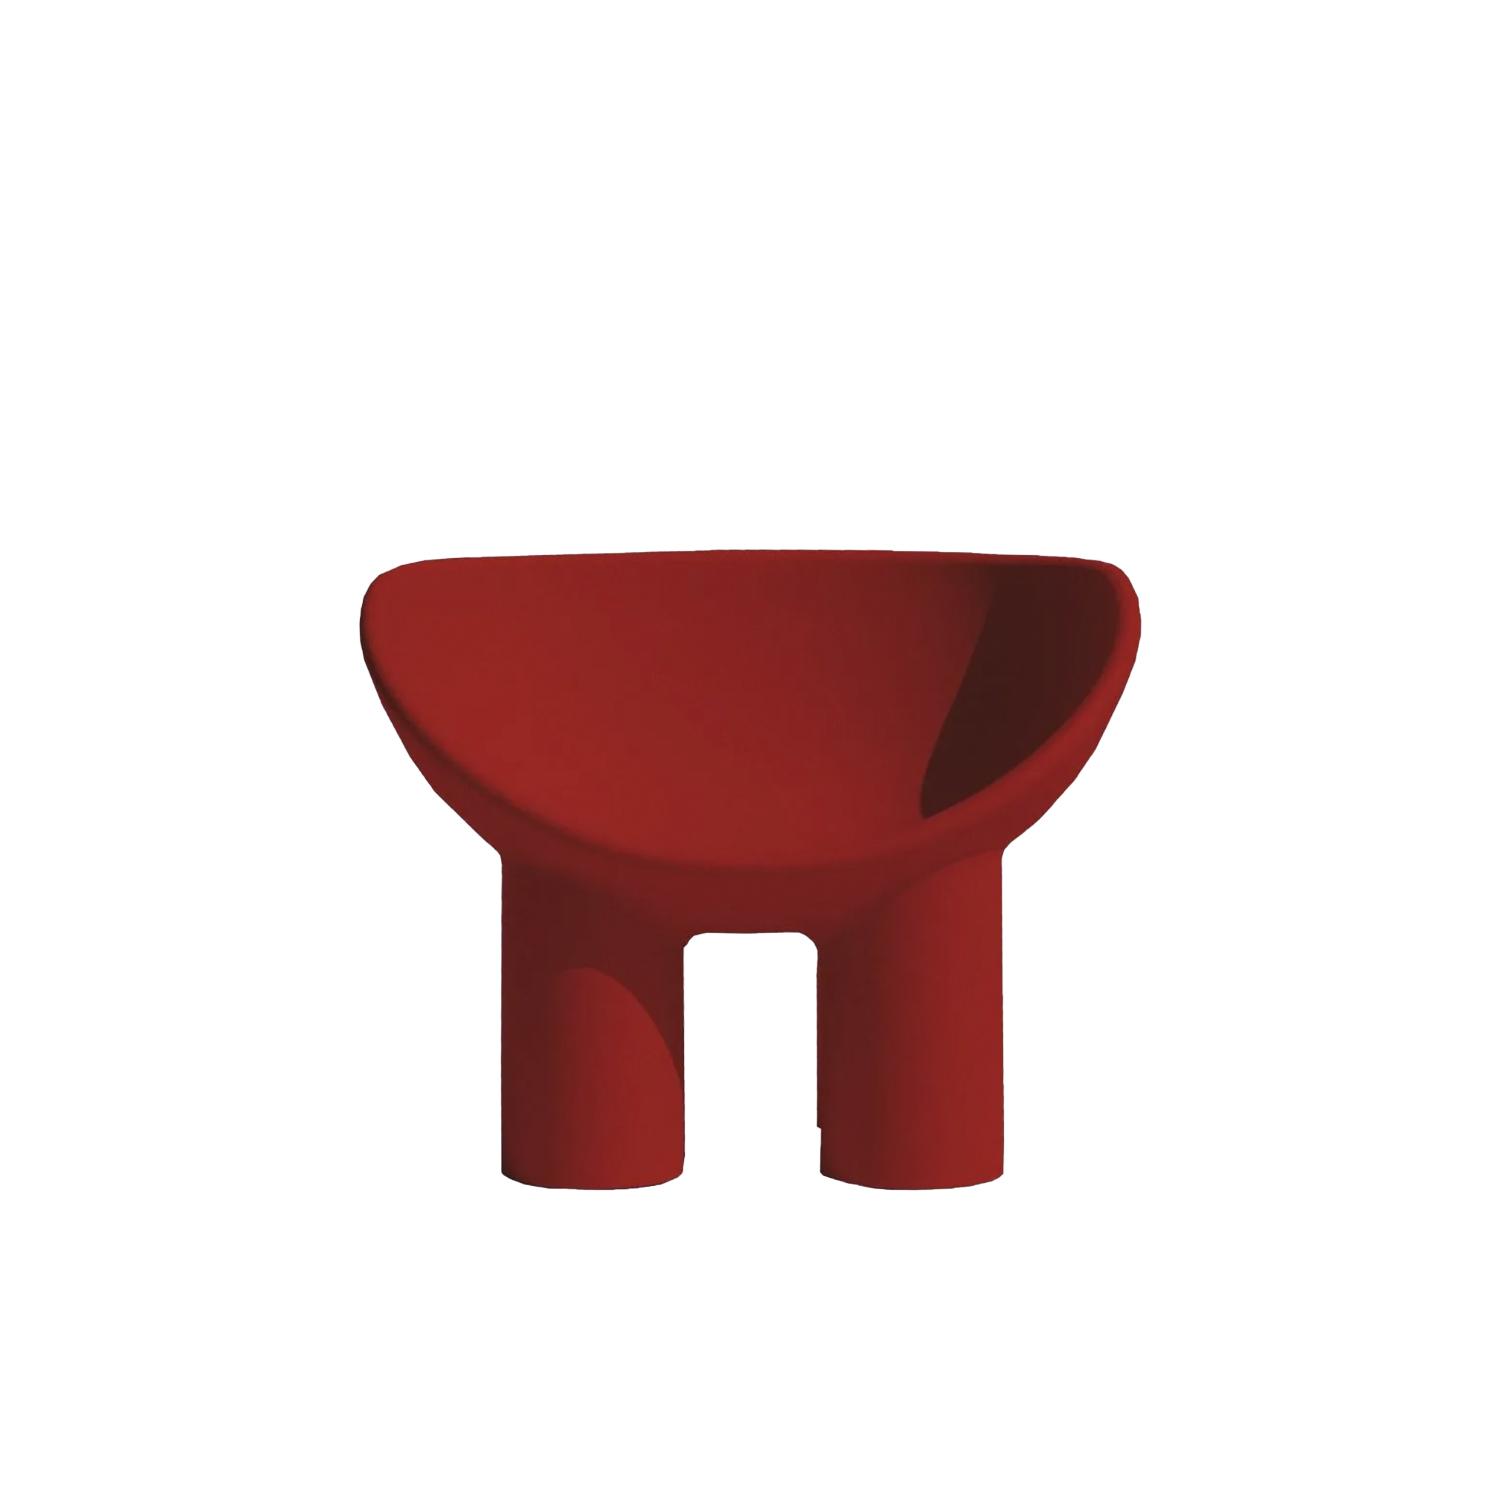 Roly Poly Armchair - The Roly Poly Collection, consisting of an armchair and a sofa, embodies the concepts of furniture and sculpture, thus representing the philosophy of Driade in a perfect way. The characteristic of these monobloc furnishing accessories is the bowl shape of the seat, rounded and welcoming, with cylindrical legs and delicately linear shapes that give it a reassuring and massive look. Made of rotationally molded polyethylene, the low seat has been enriched with soft padded cushions that nestle in its curved shape for an engaging sitting experience. Armchair and sofa are available in a variety of colours to complement any type of interior or exterior decoration.  | Matter of Stuff